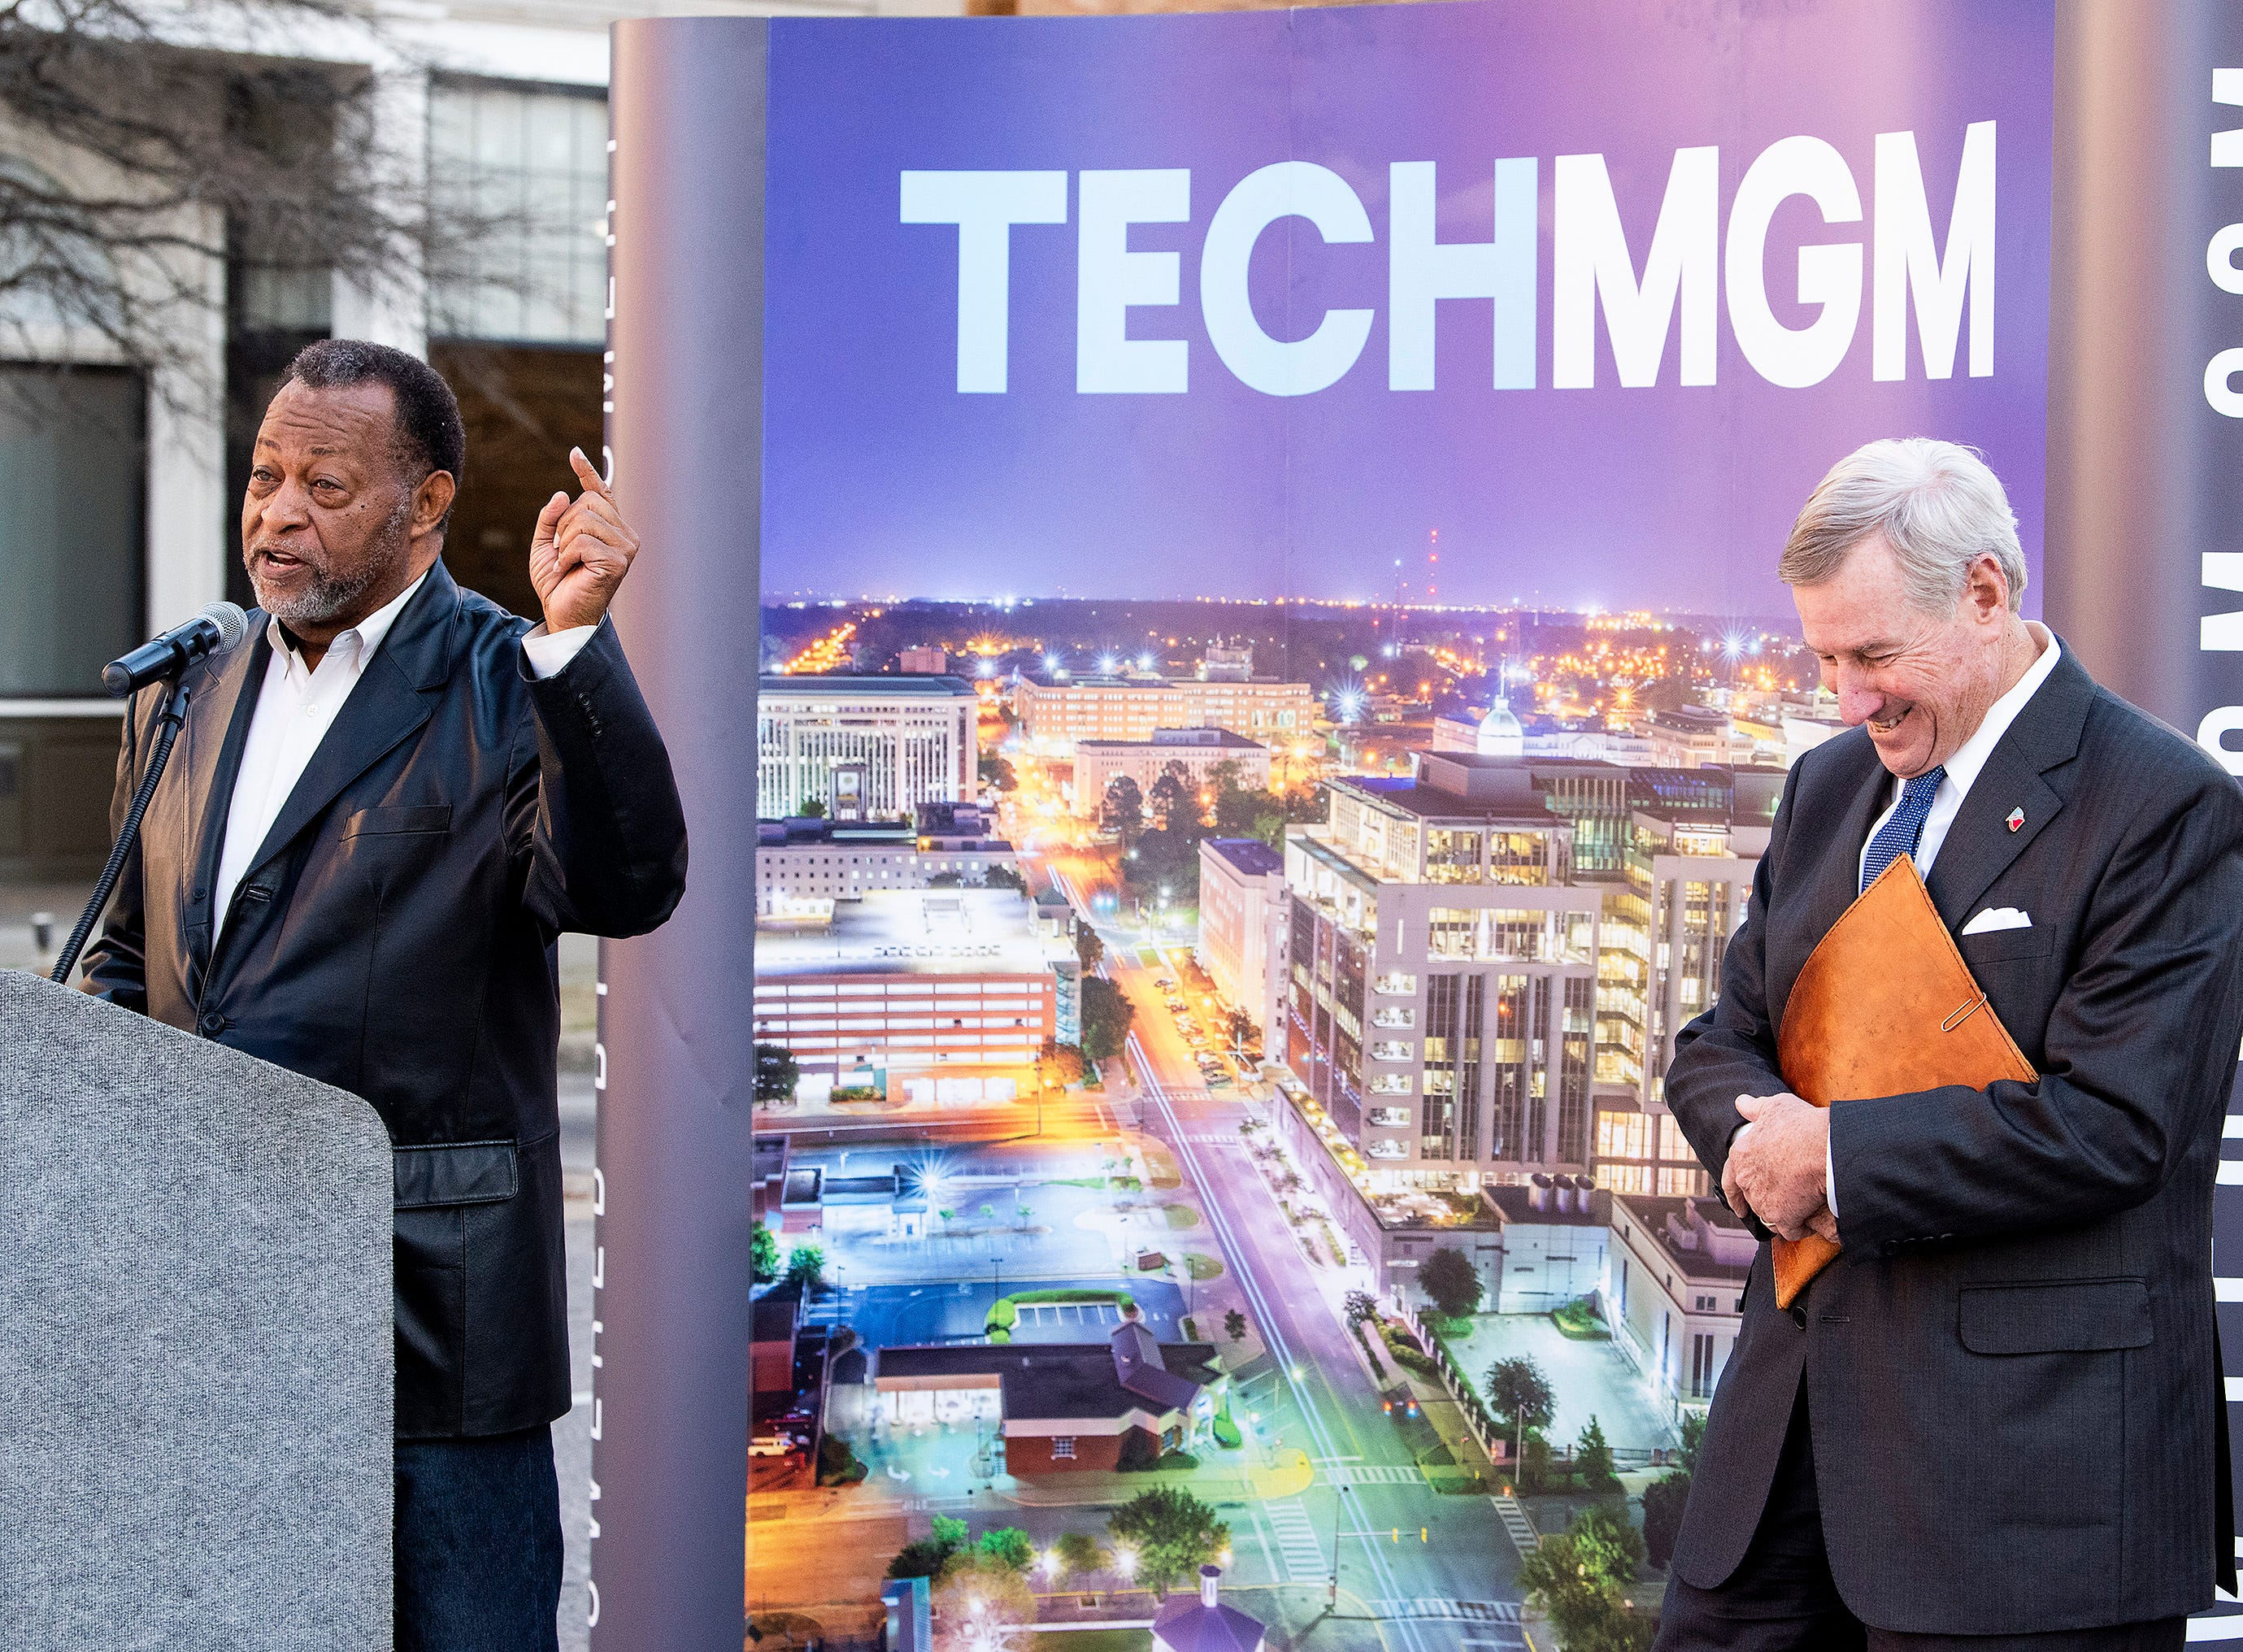 Montgomery County Commission Chairman Elton Dean, left, and Montgomery Mayor Todd Strange announce free 1GB WiFi and other tech improvements along the Commerce Street / Dexter Avenue corridor in downtown Montgomery, Ala., on Wednesday January 16, 2019.